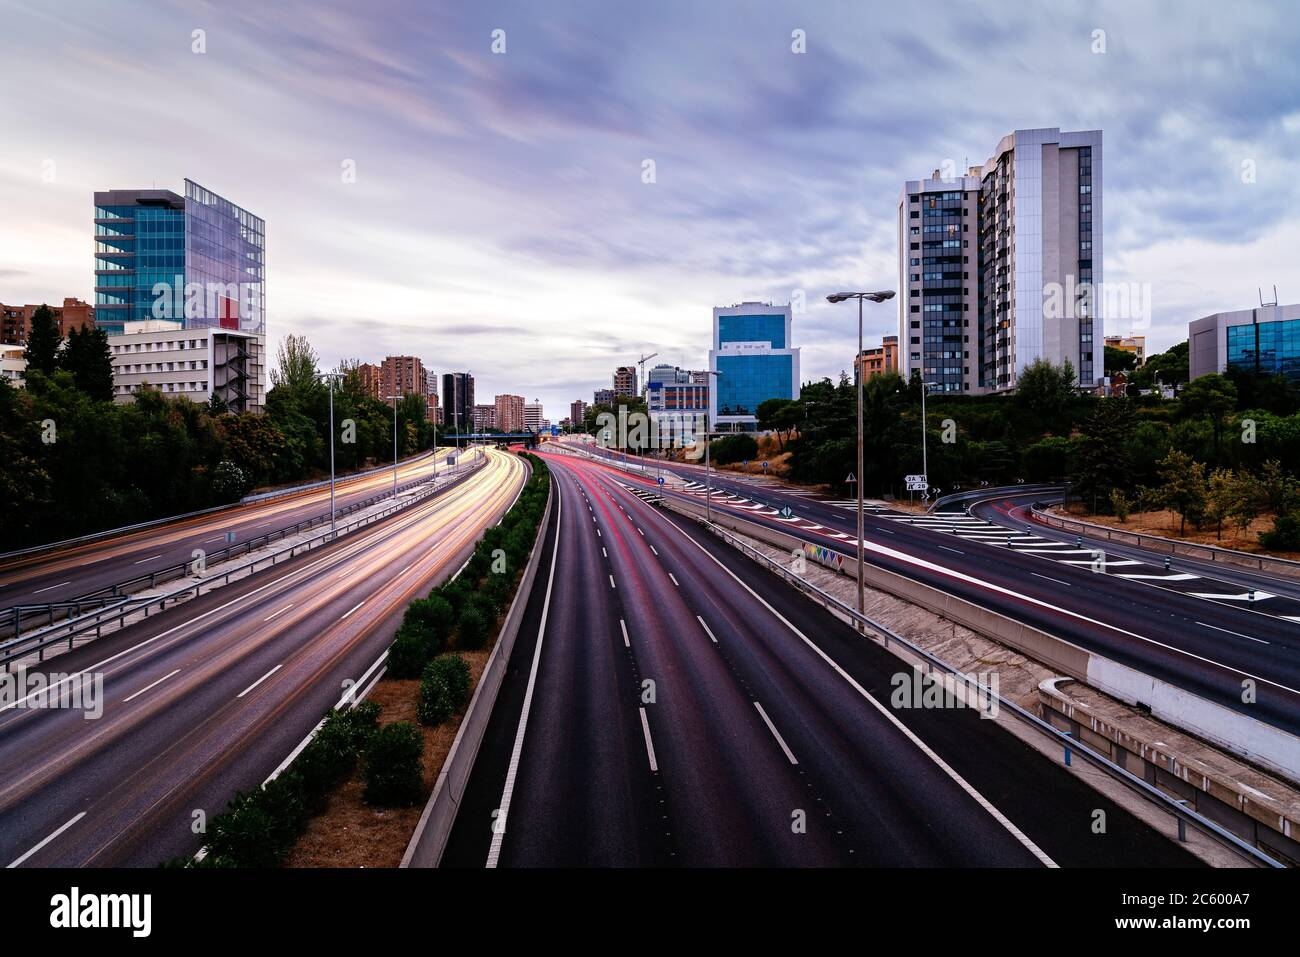 M30 motorway in Madrid at sunset. Long exposure with traffic light trails. Stock Photo